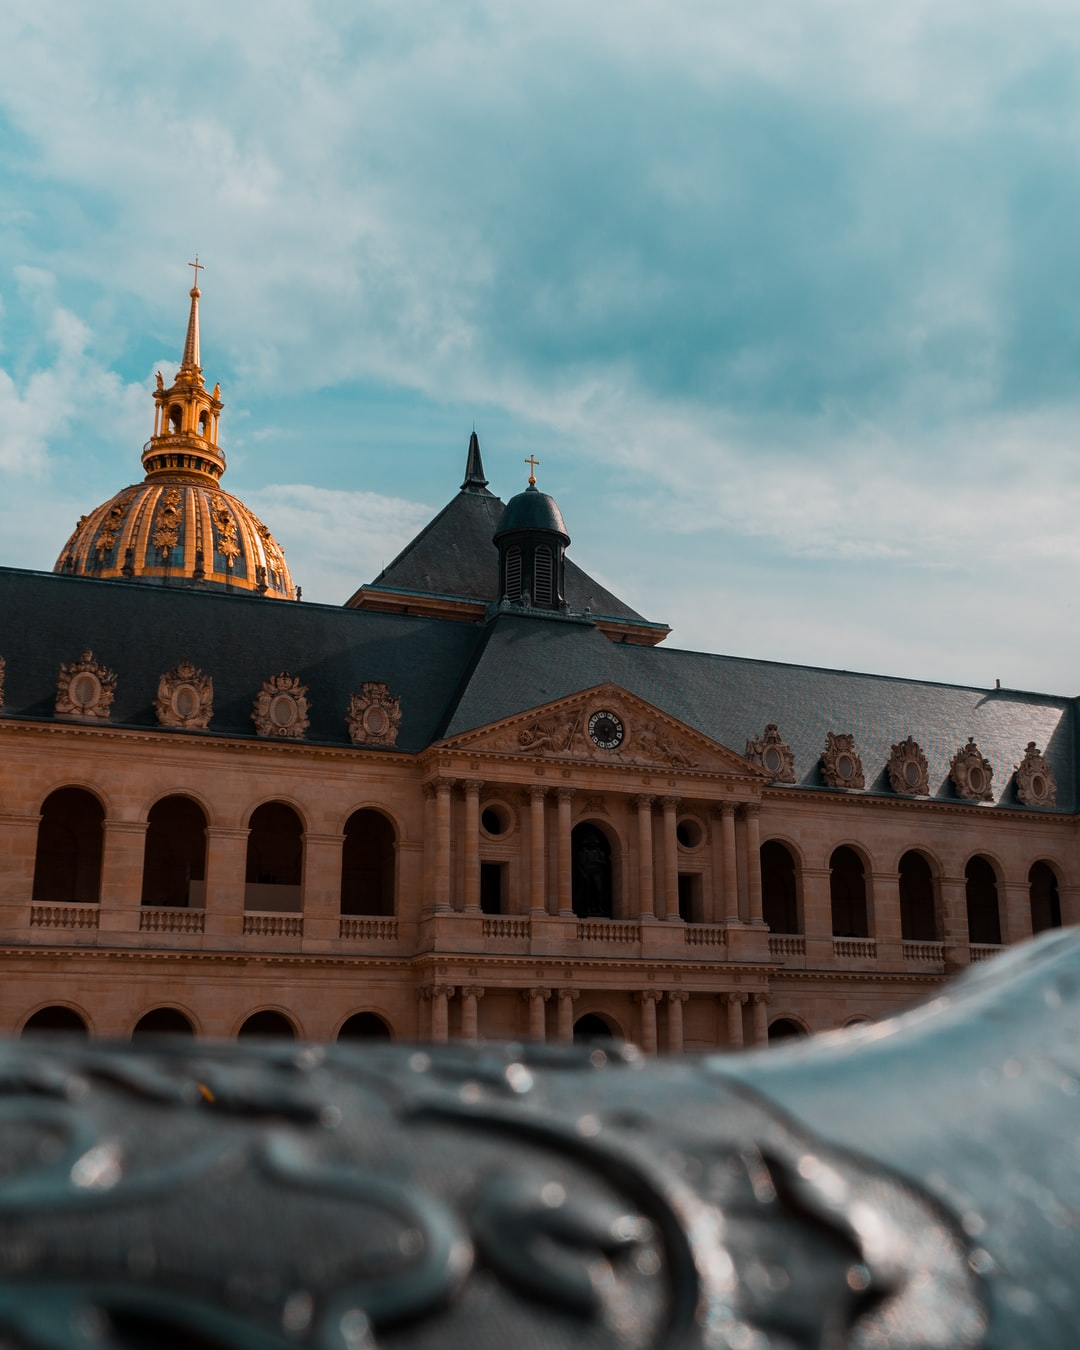 A different angle, to see this incredible place in Paris. L'hôtel des Invalides